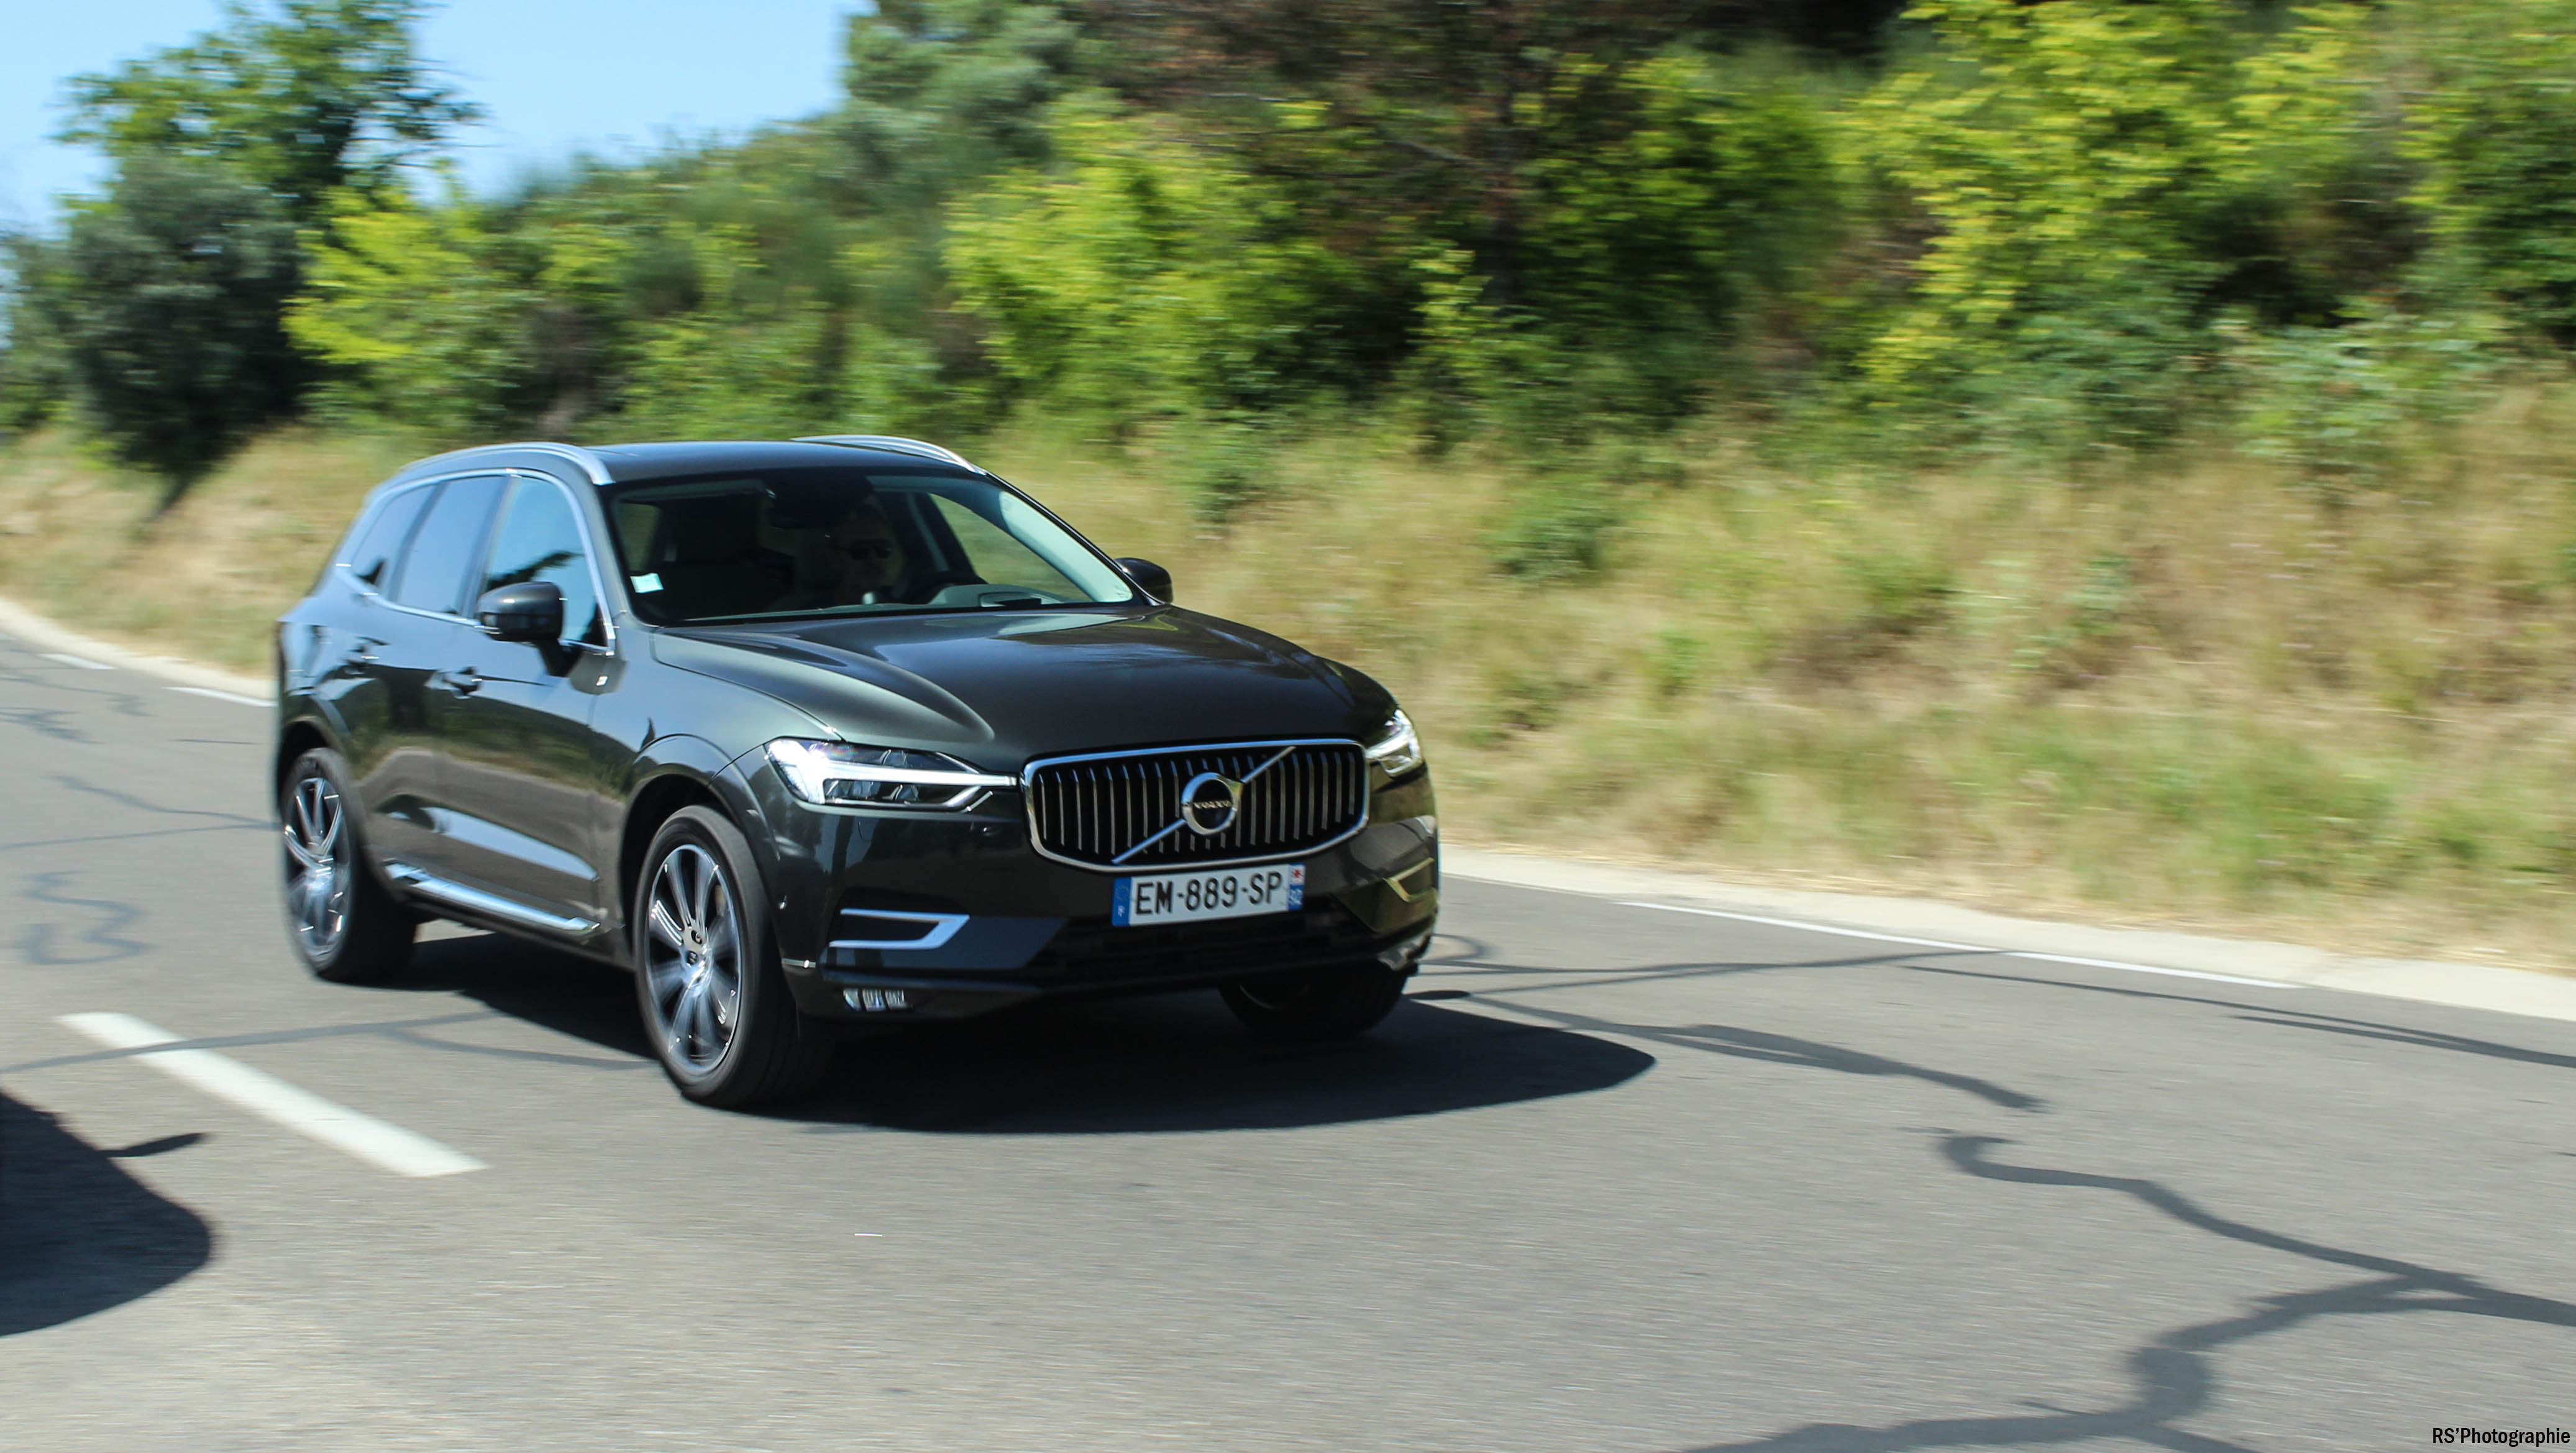 OpéVolvo5-volvo-xc60-avant-front-Arnaud Demasier-RSPhotographie